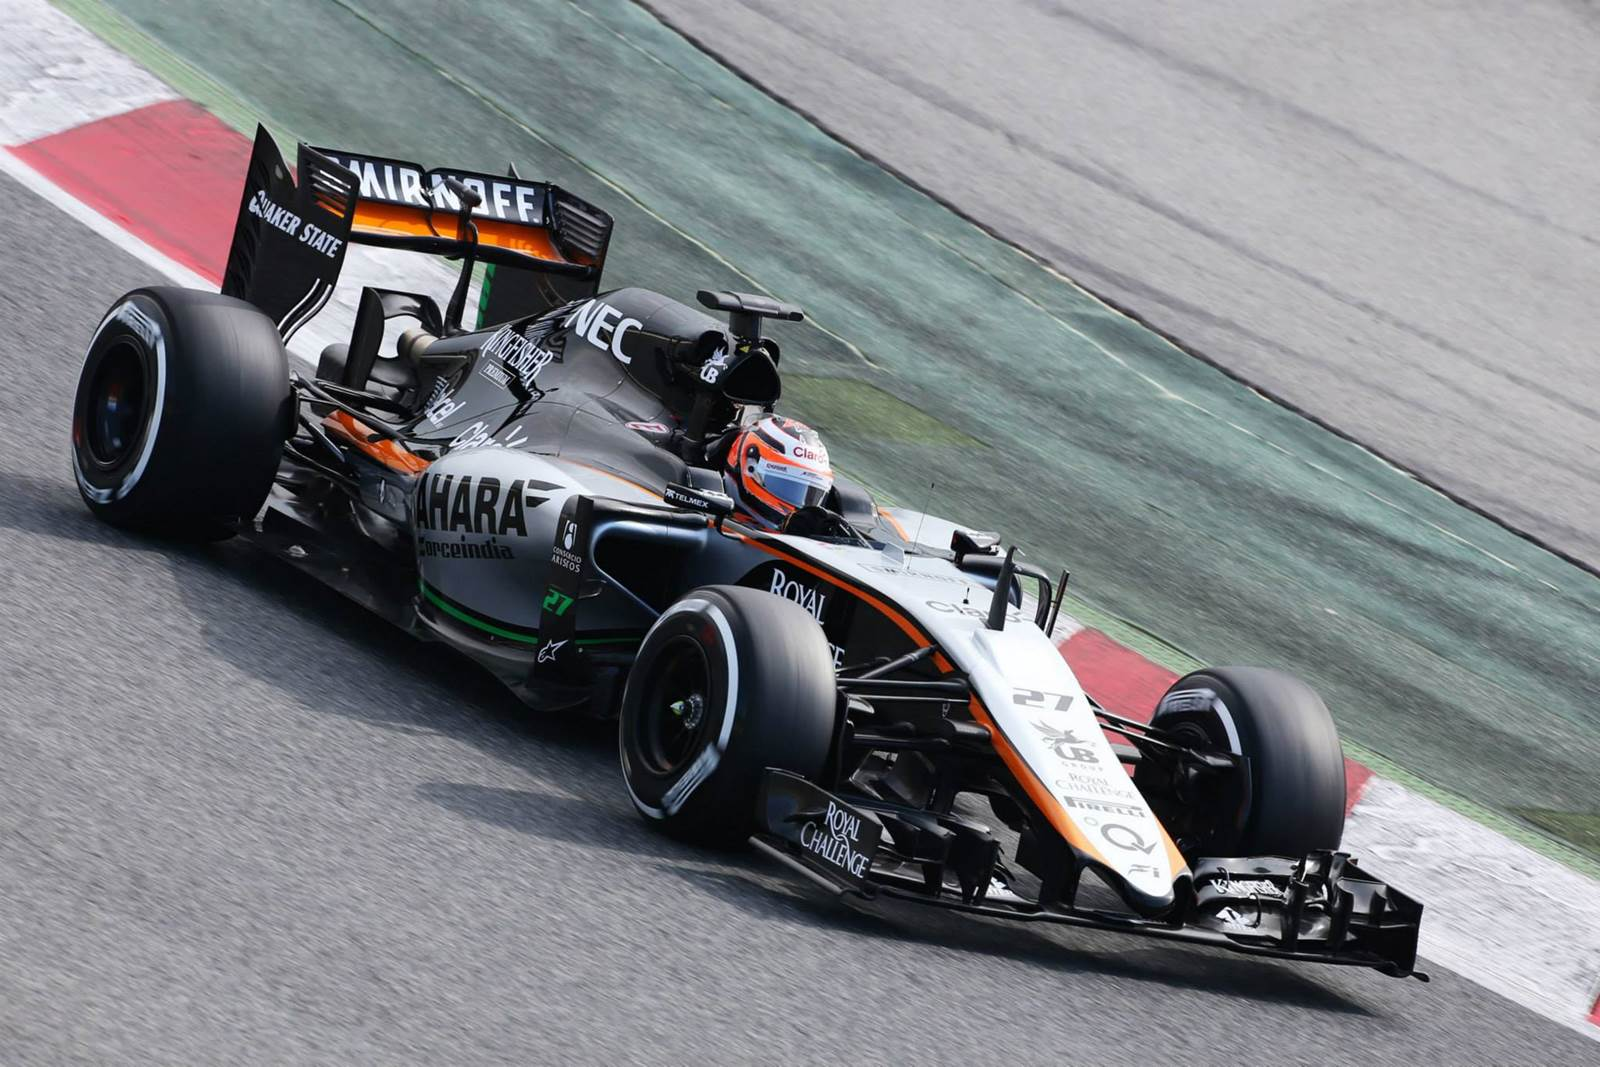 Force India 2015 - Nico Hulkenberg